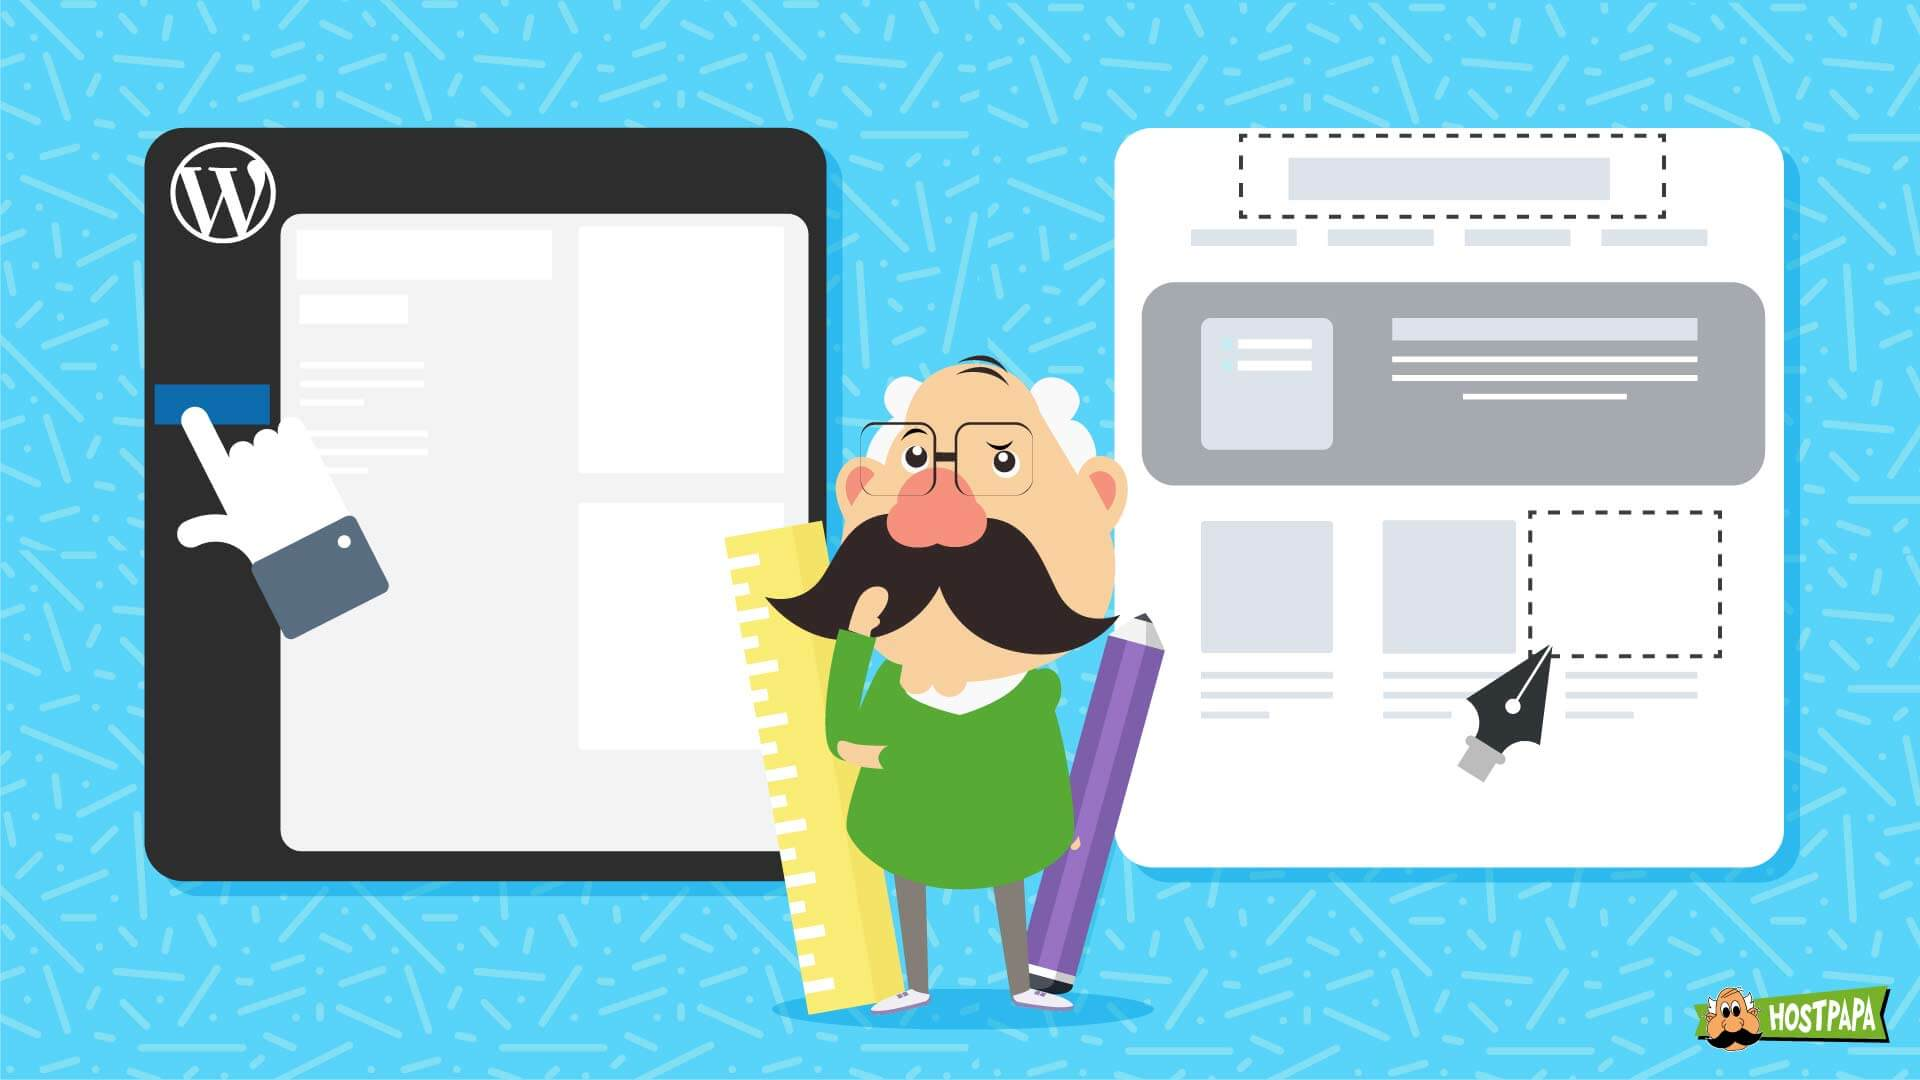 Learn what is better for you, wordpress or website builders